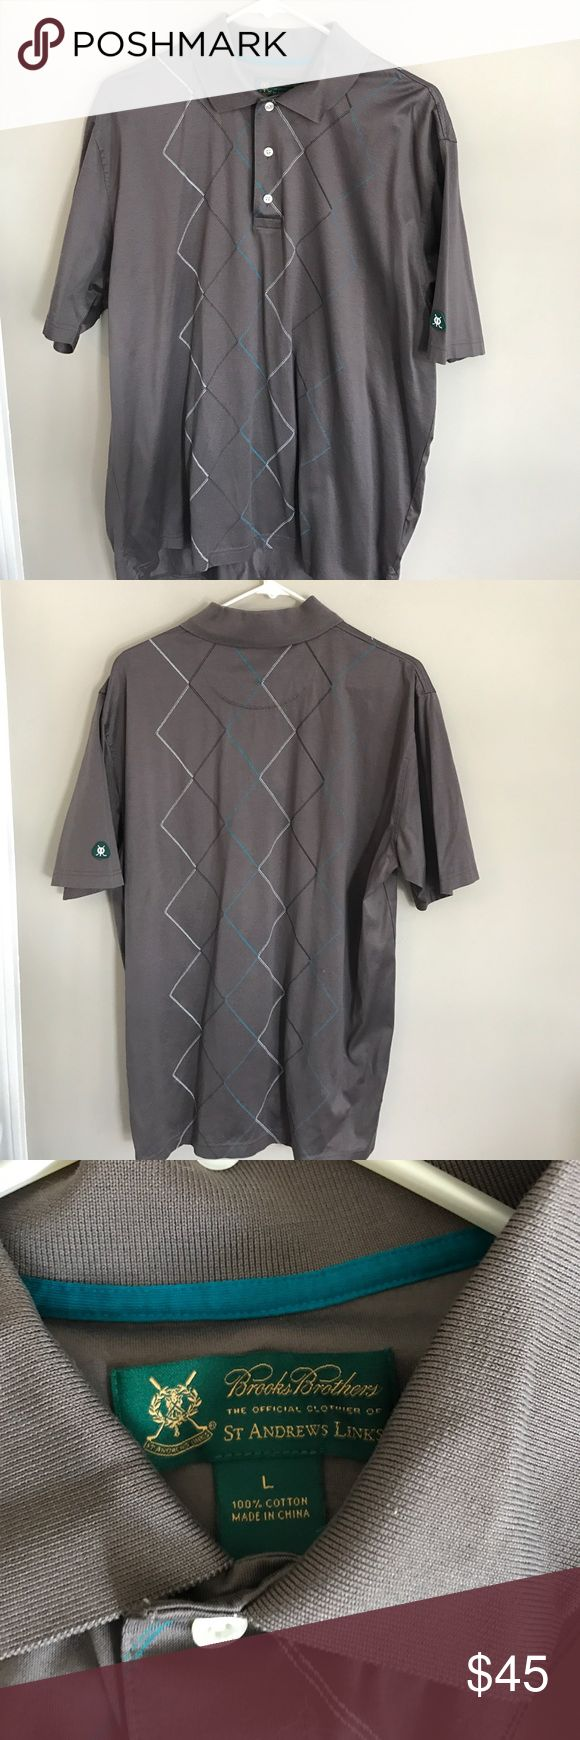 BROOKS BROTHERS Men's Cotton Polo Shirt Sz L Beautiful Shine Cotton Mushroom Colored Argyle Detailed Polo Shirt. Excellent Gently Worn Condition. Brooks Brothers Shirts Polos